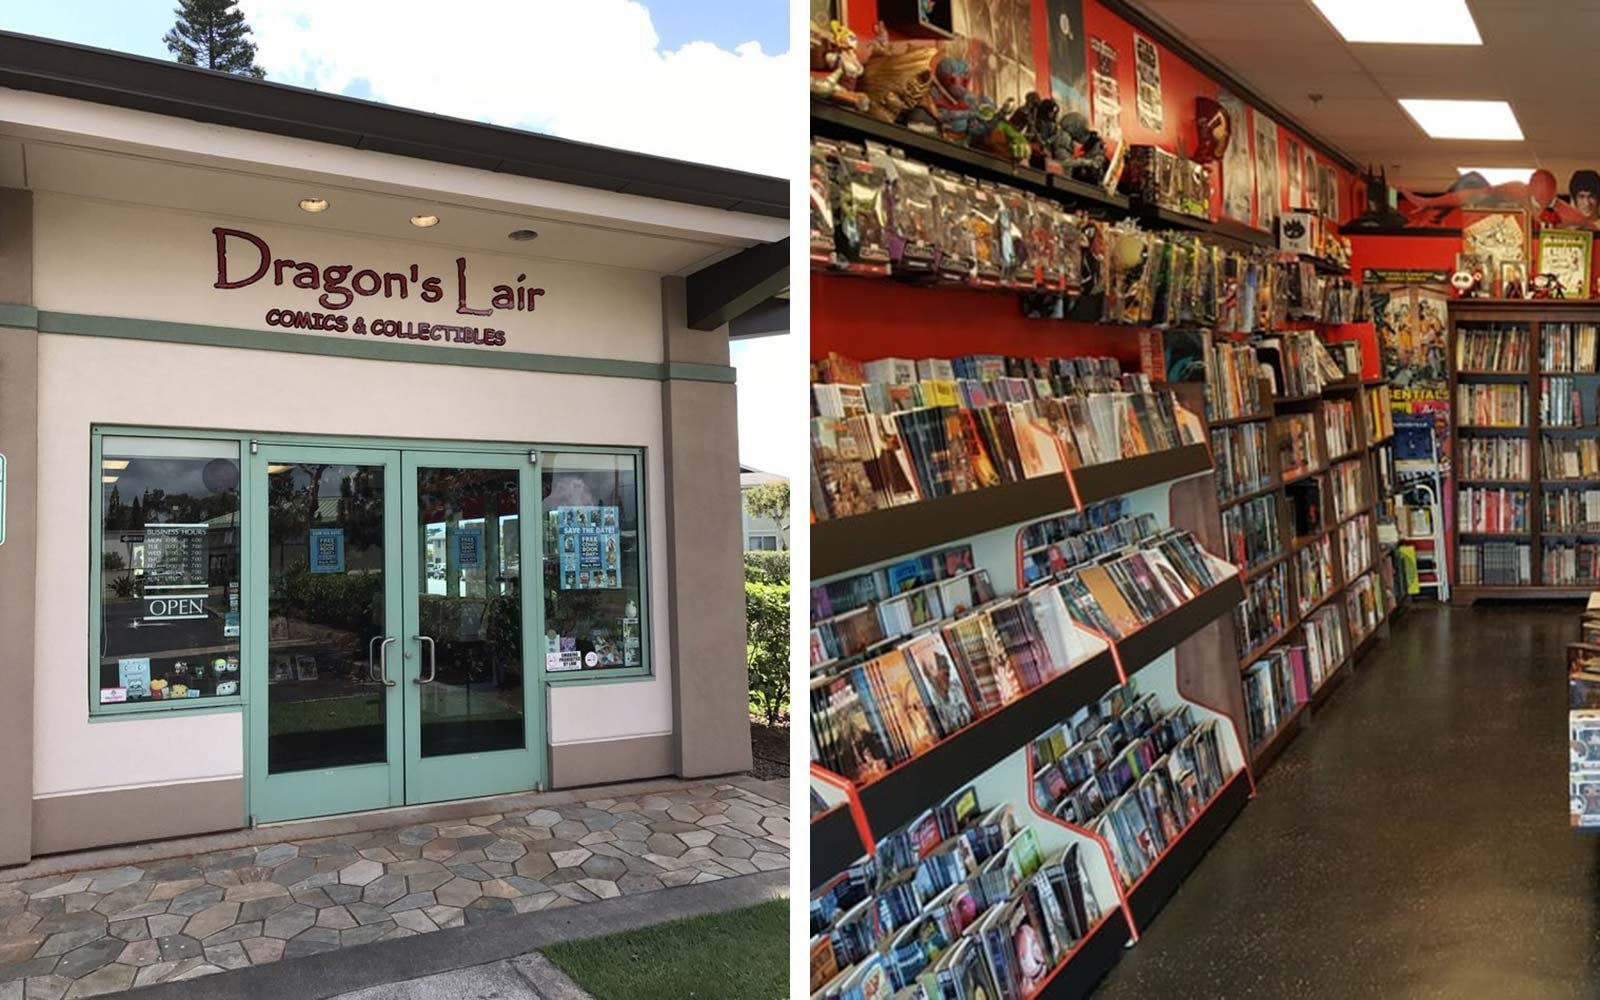 Dragon's Lair Mililani Hawaii